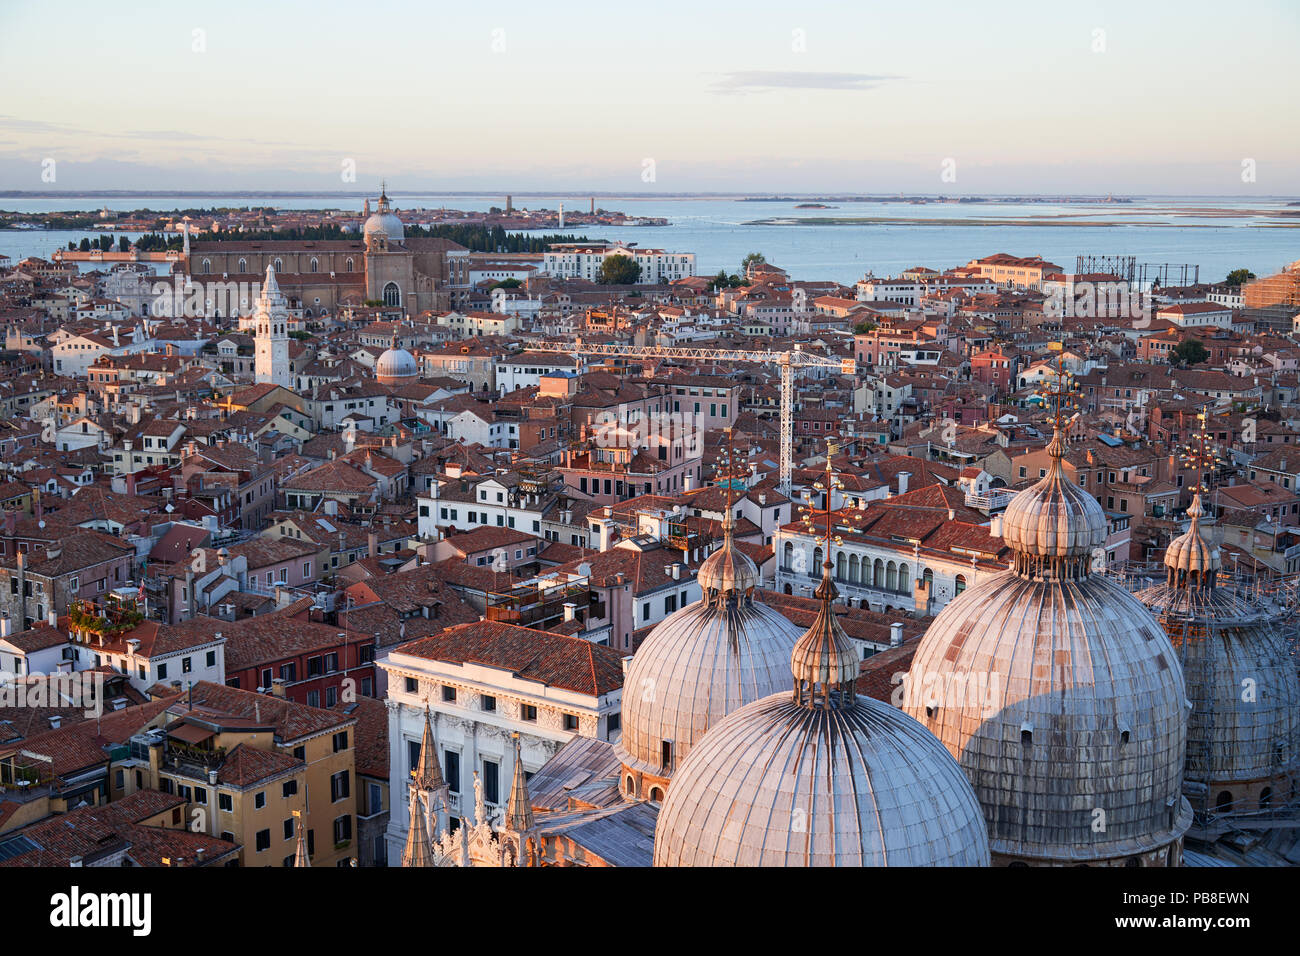 Aerial view of Venice rooftops and Saint Mark Basilica domes before sunset, Italy - Stock Image